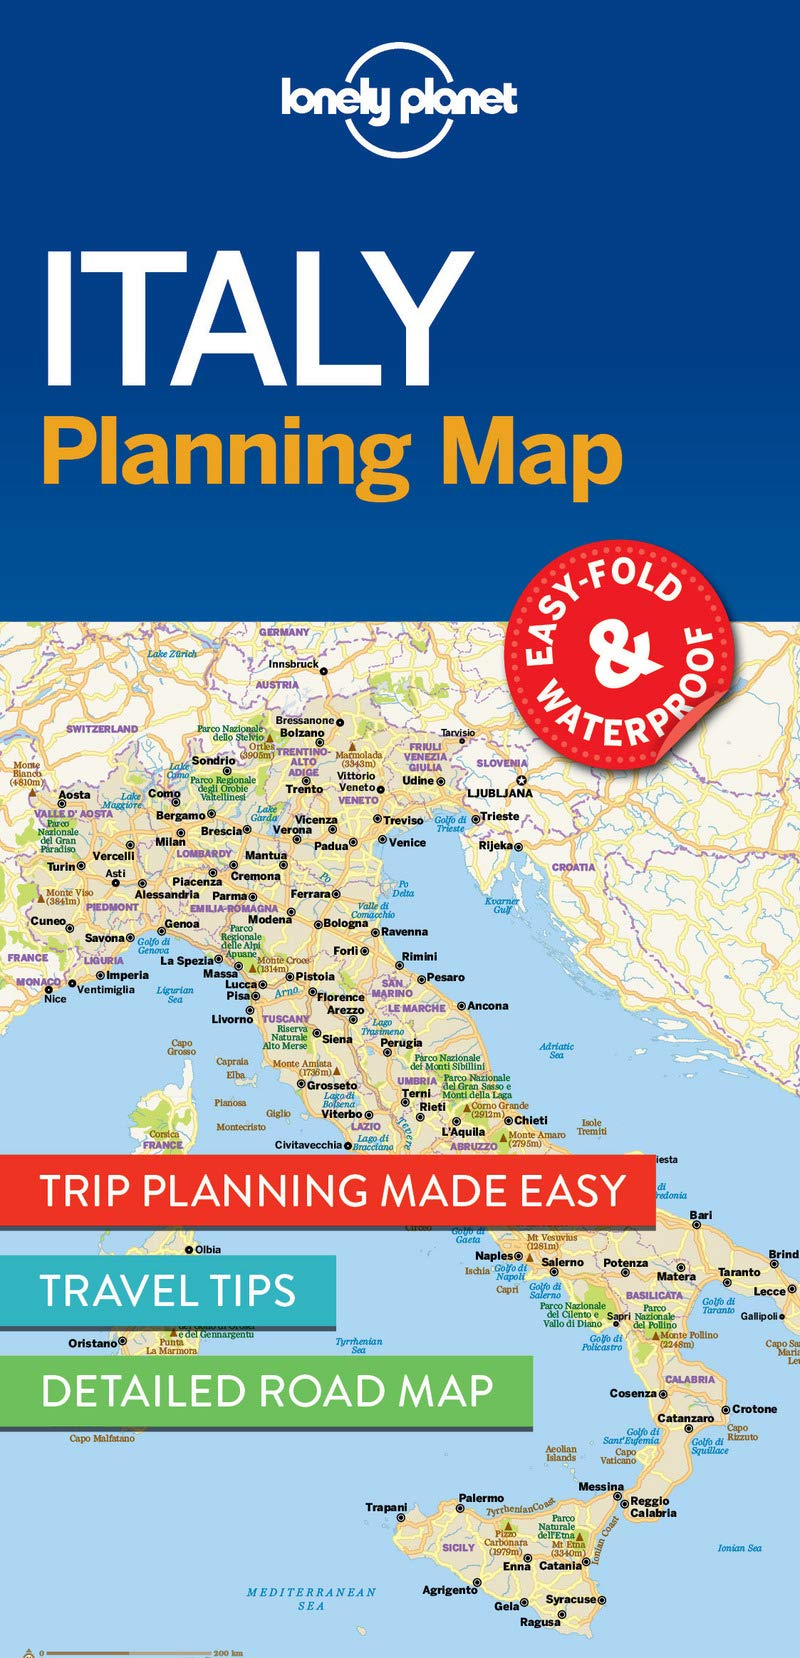 Download Lonely Planet Italy Planning Map (Planning Maps)